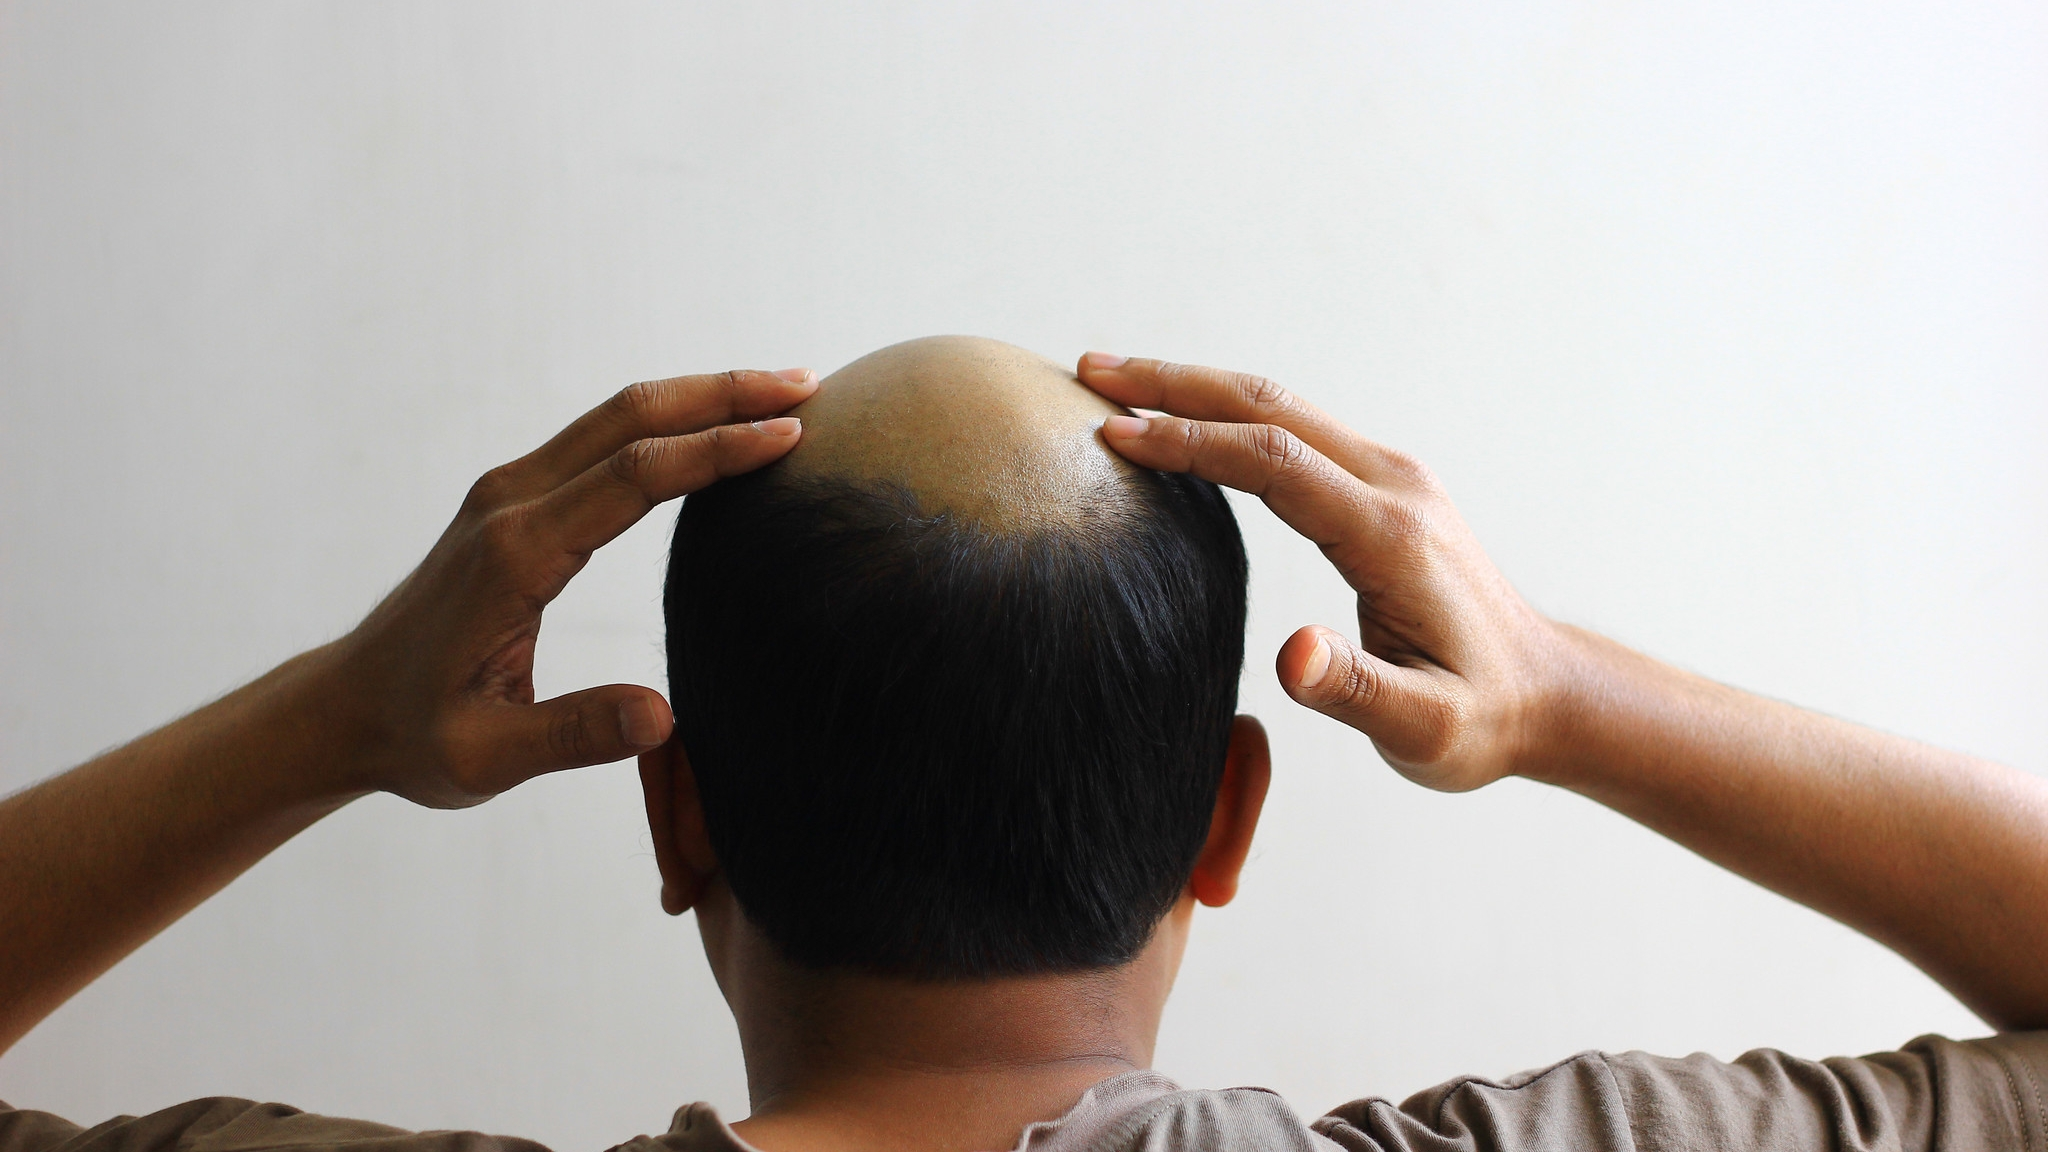 A baldness remedy may be on the way